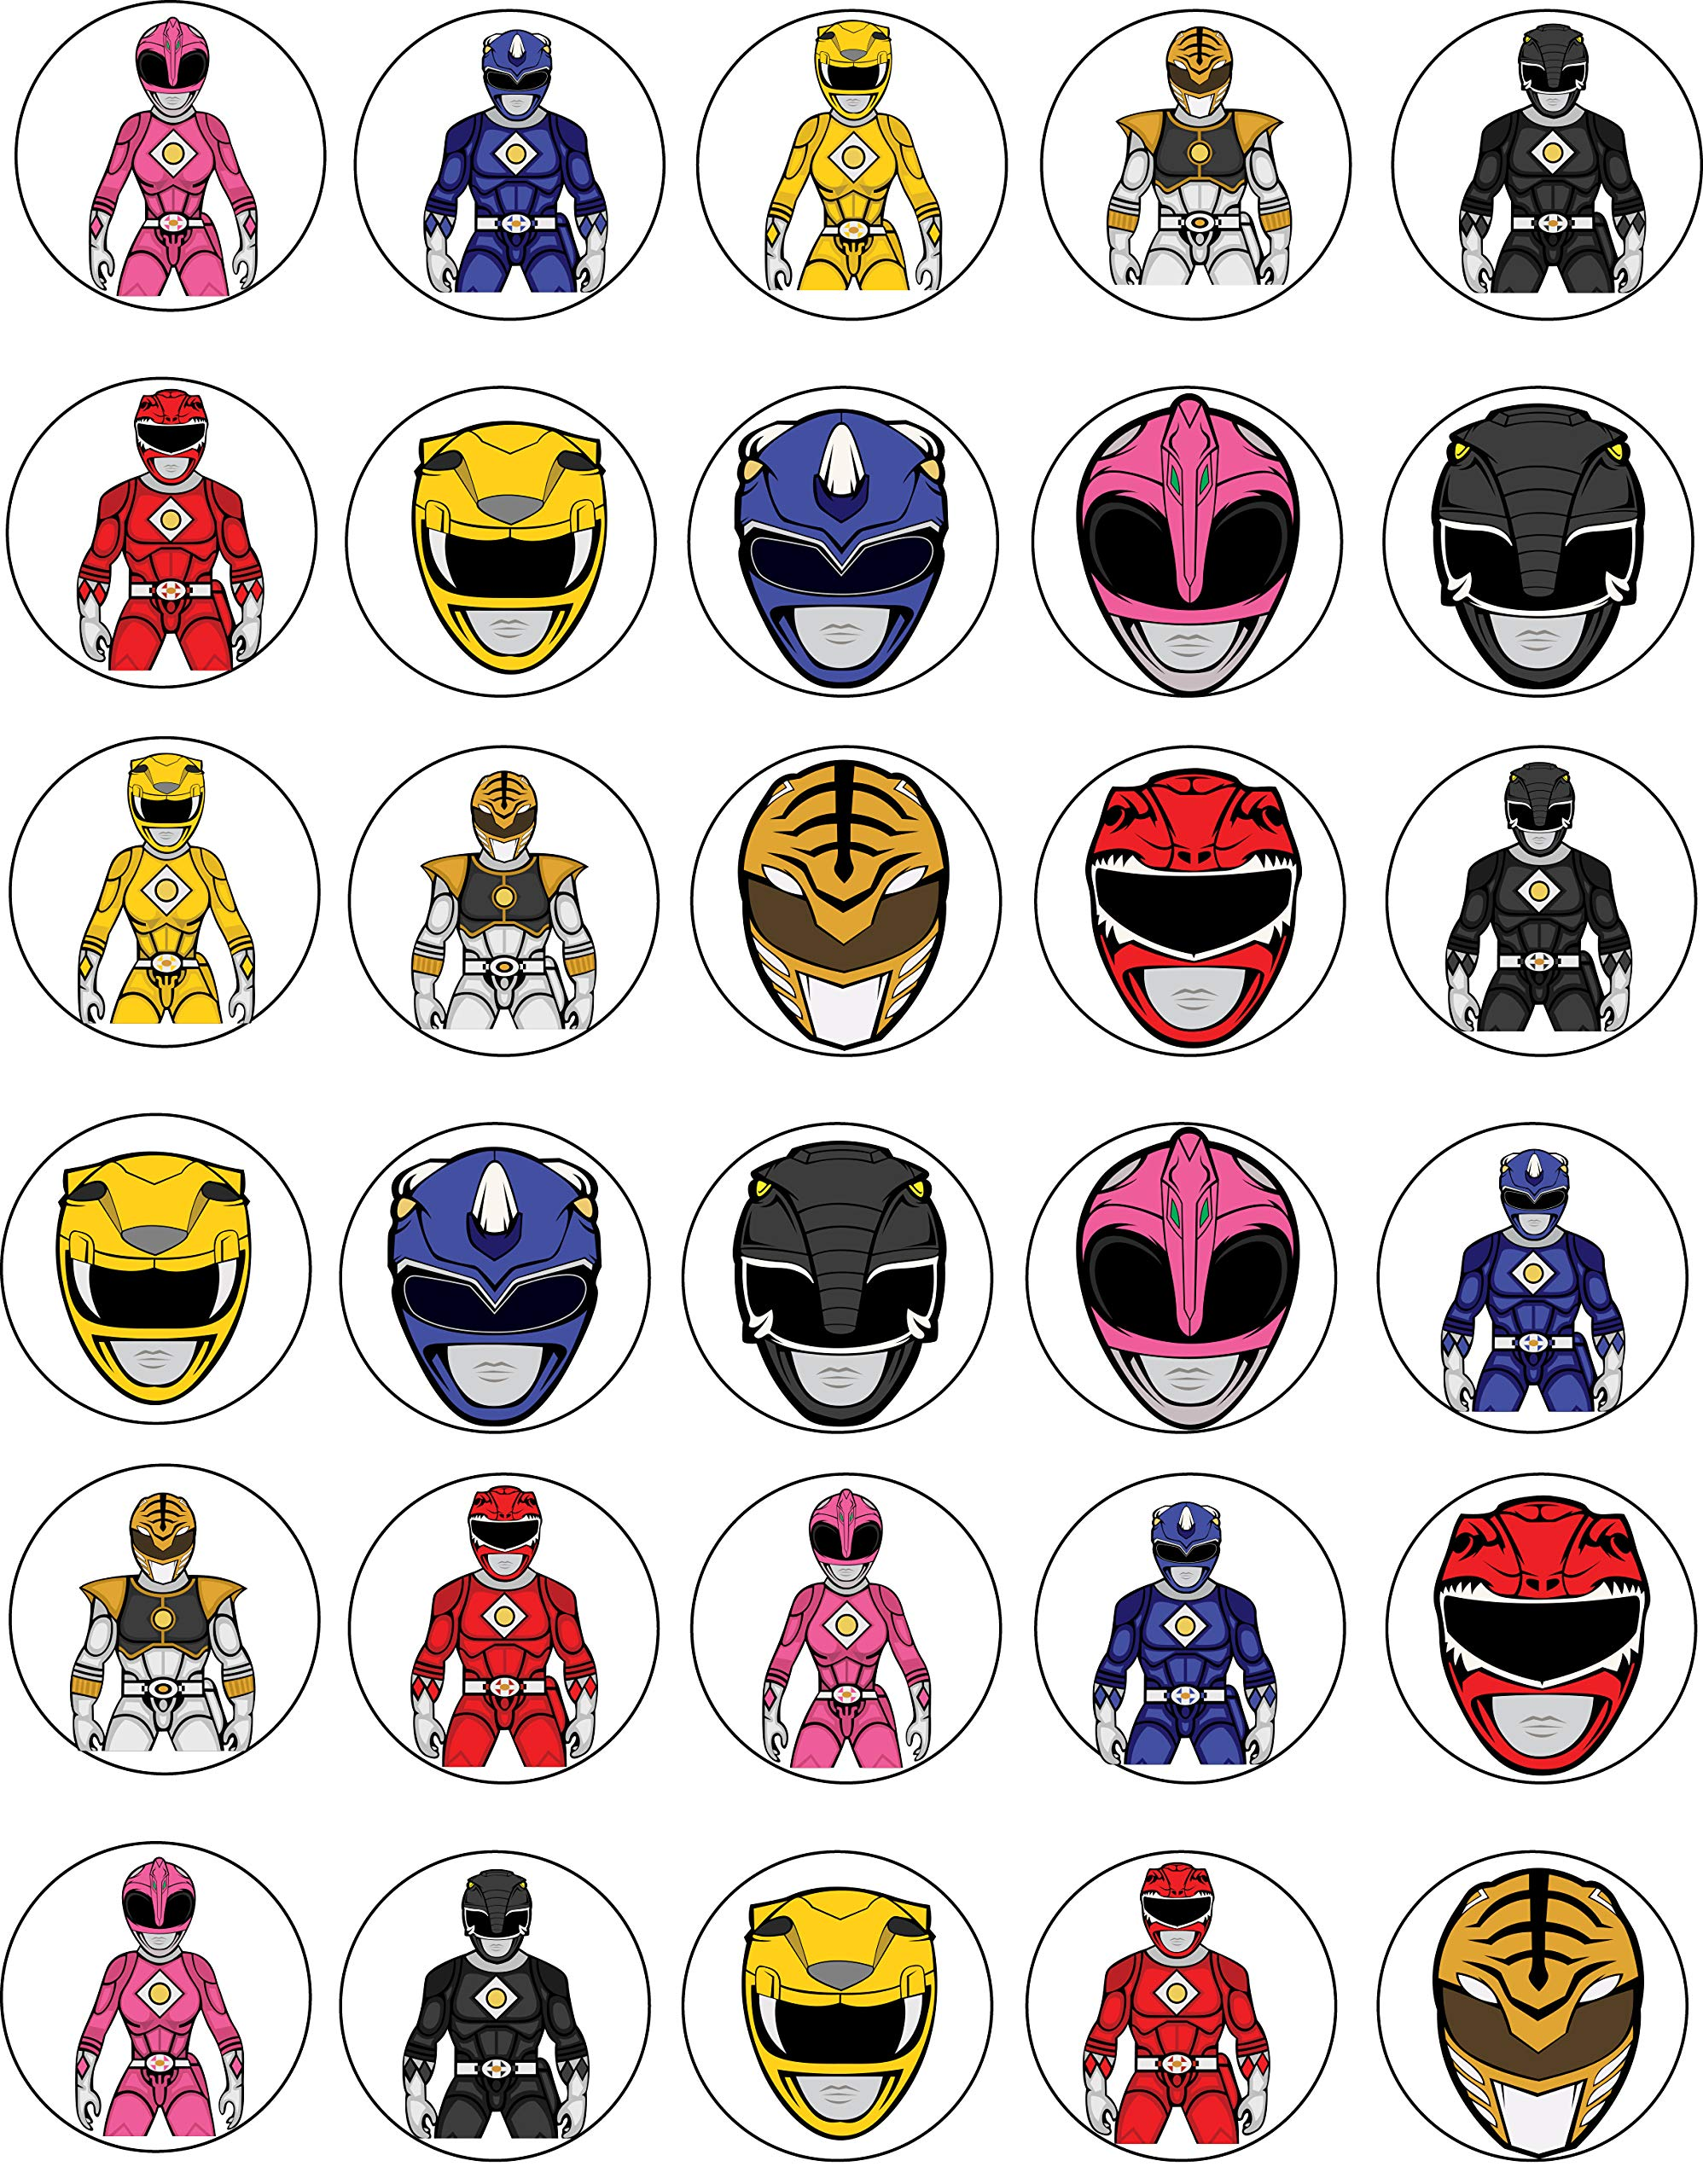 30 x Edible Cupcake Toppers - Power Rangers Themed Collection of Edible Cake Decorations | Uncut Edible Prints on Wafer Sheet